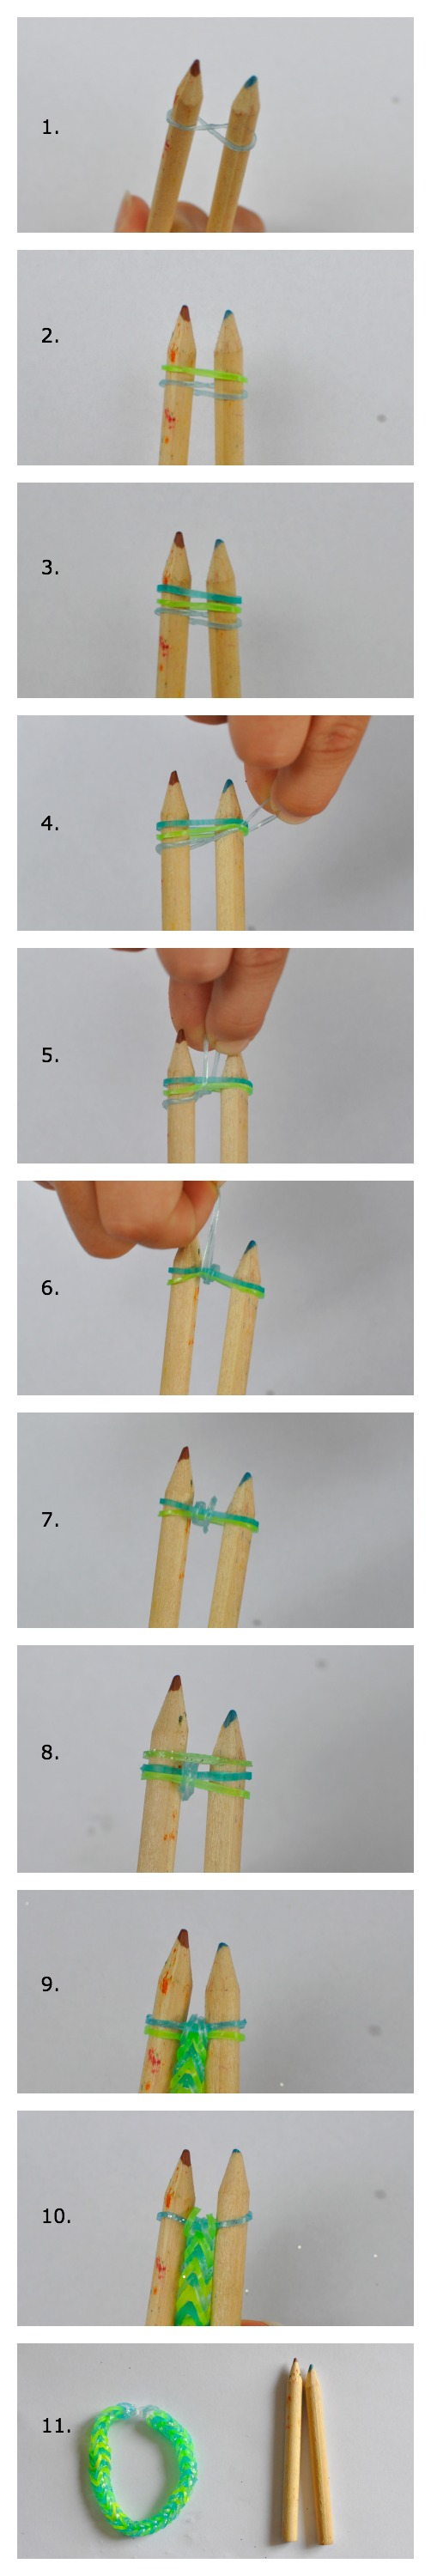 How to make a loom band bracelet with 2 pencils - tutorial